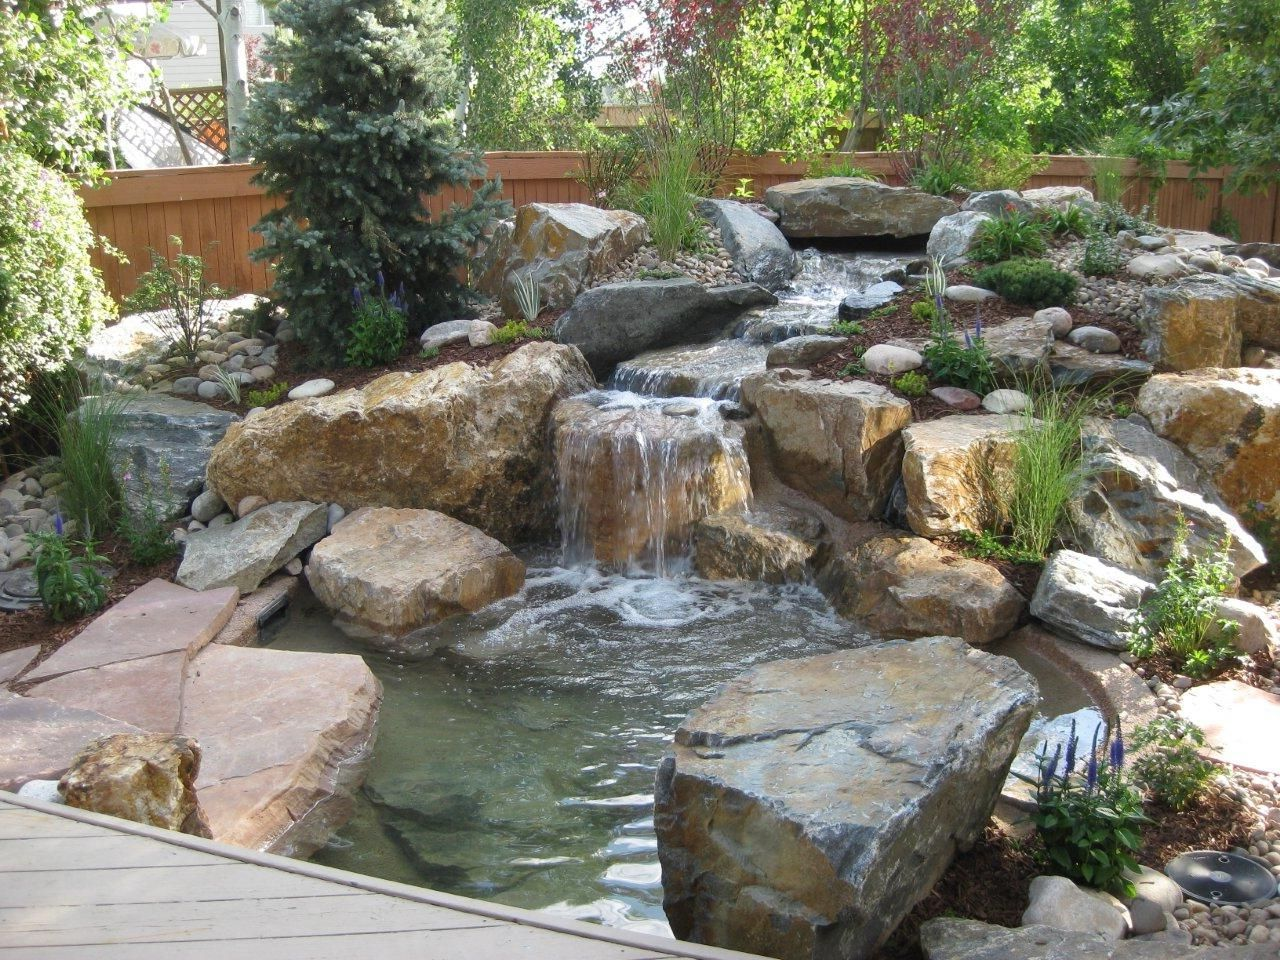 Backyard water features in japanese garden concept for Garden rock waterfall fountain